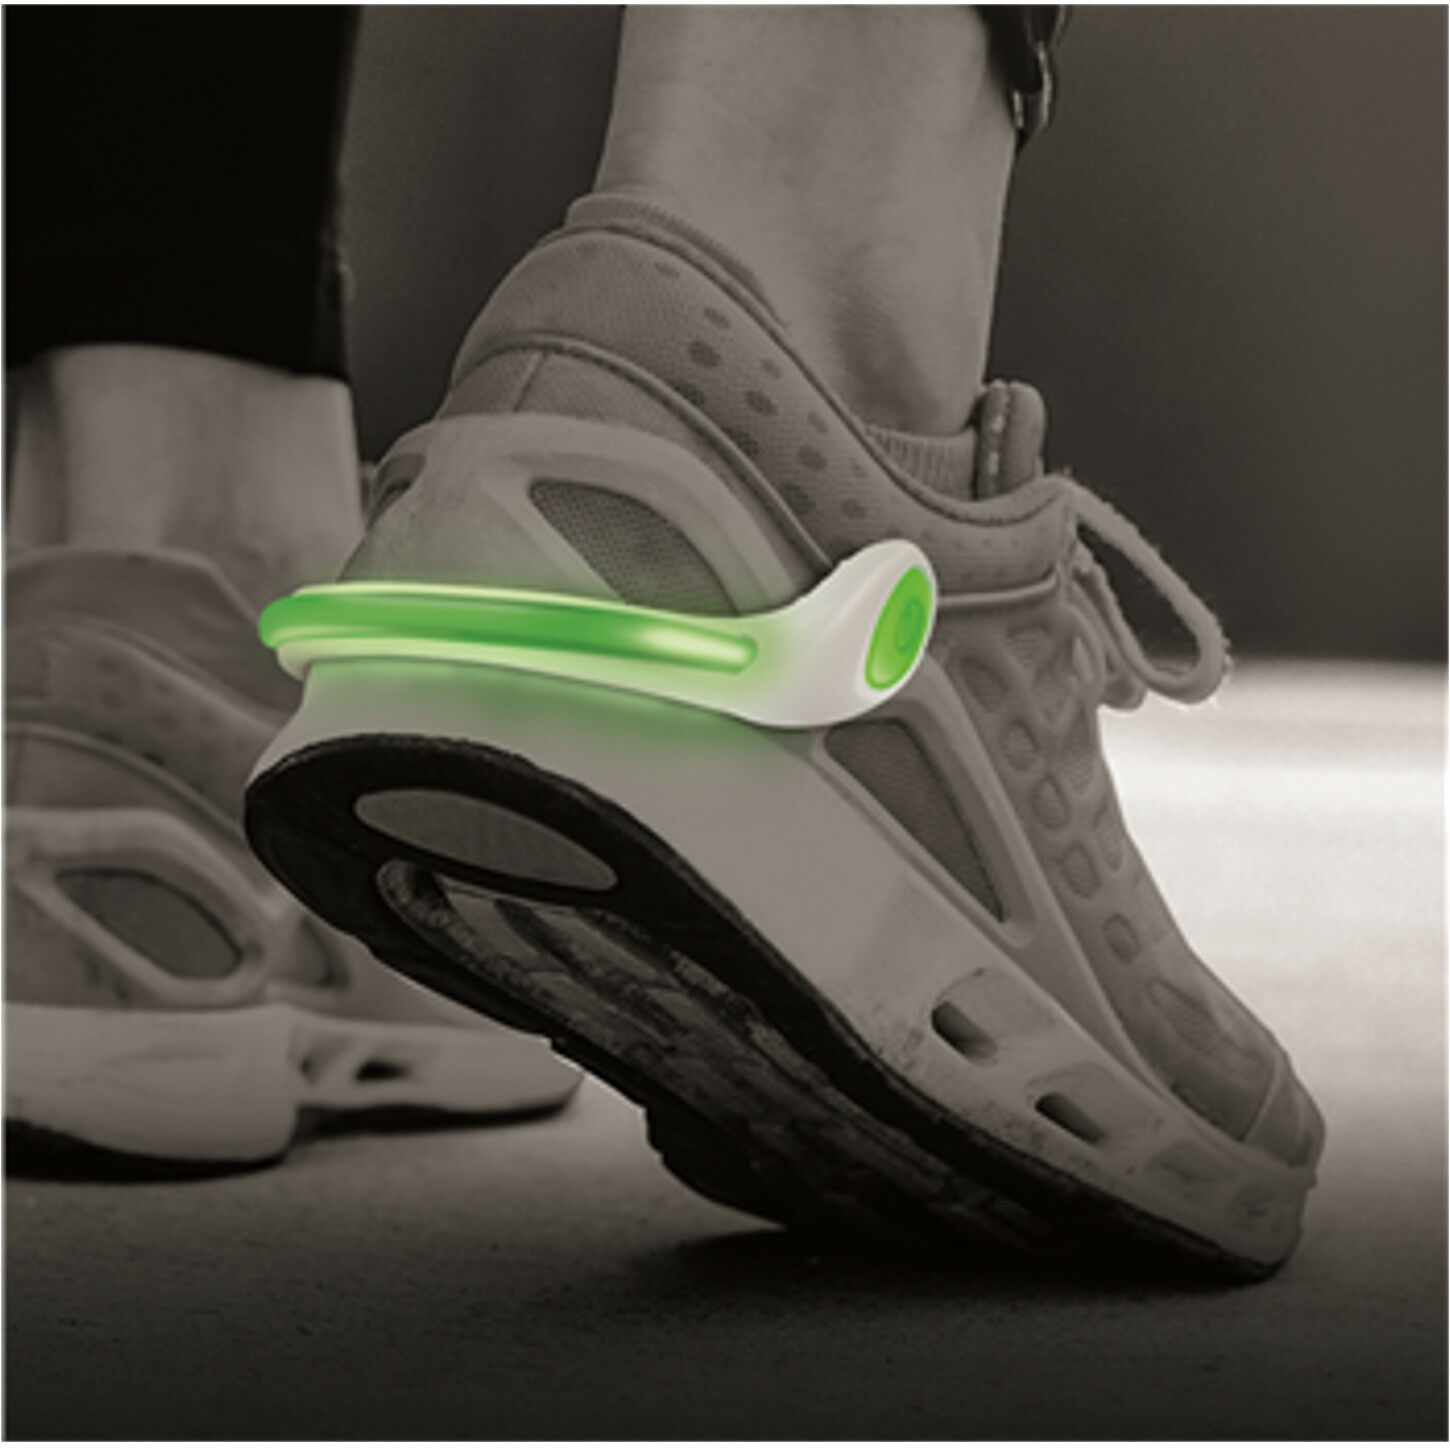 Outdoor Safety Shoe Light Clip Bright Luminous LED Running ...